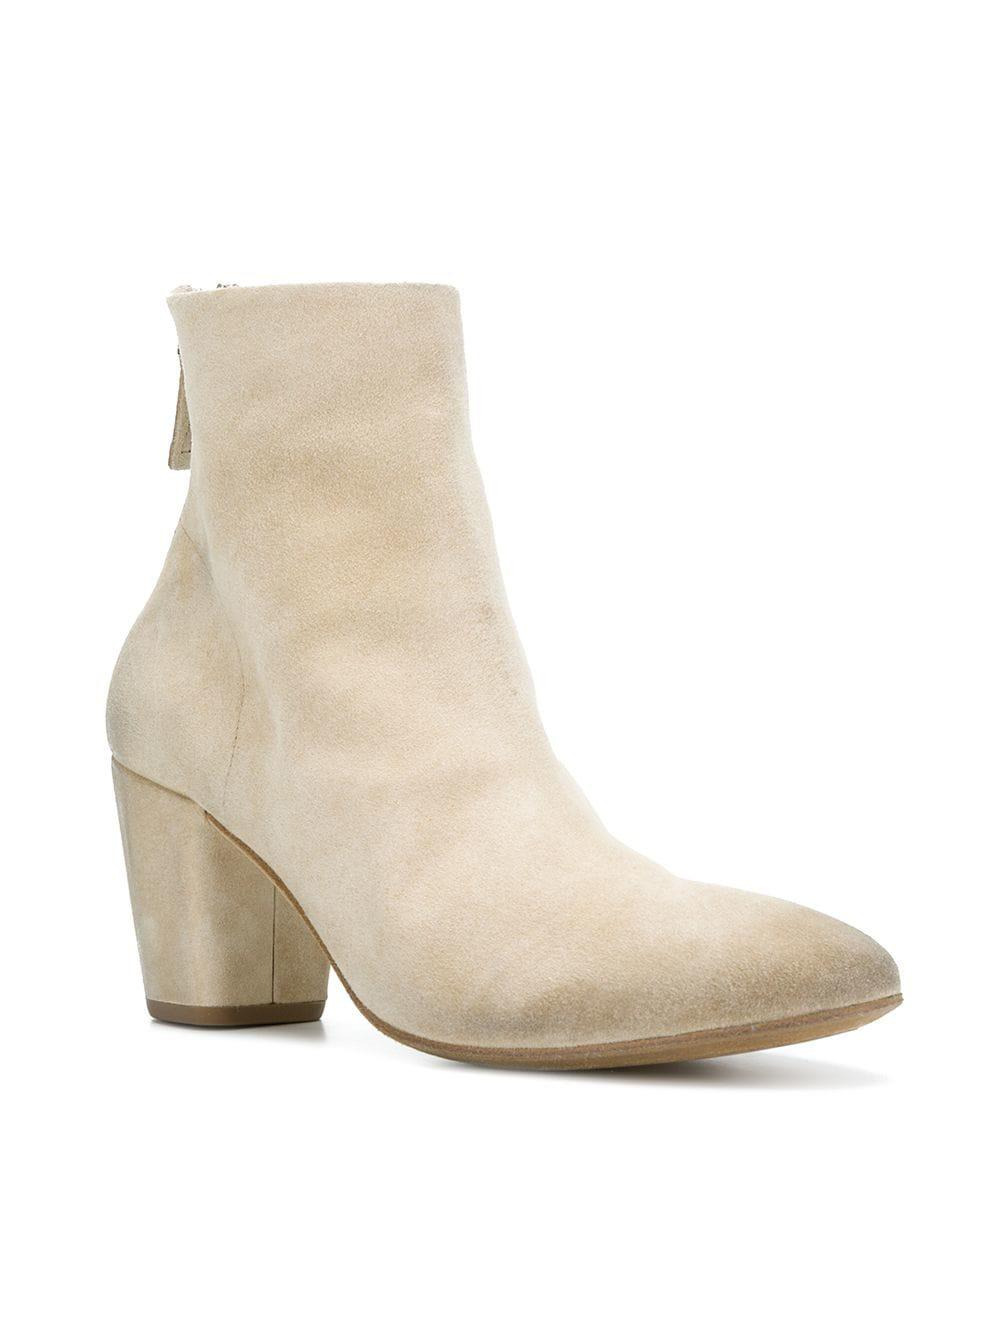 Marsèll Leather Block Heel Boots in Natural